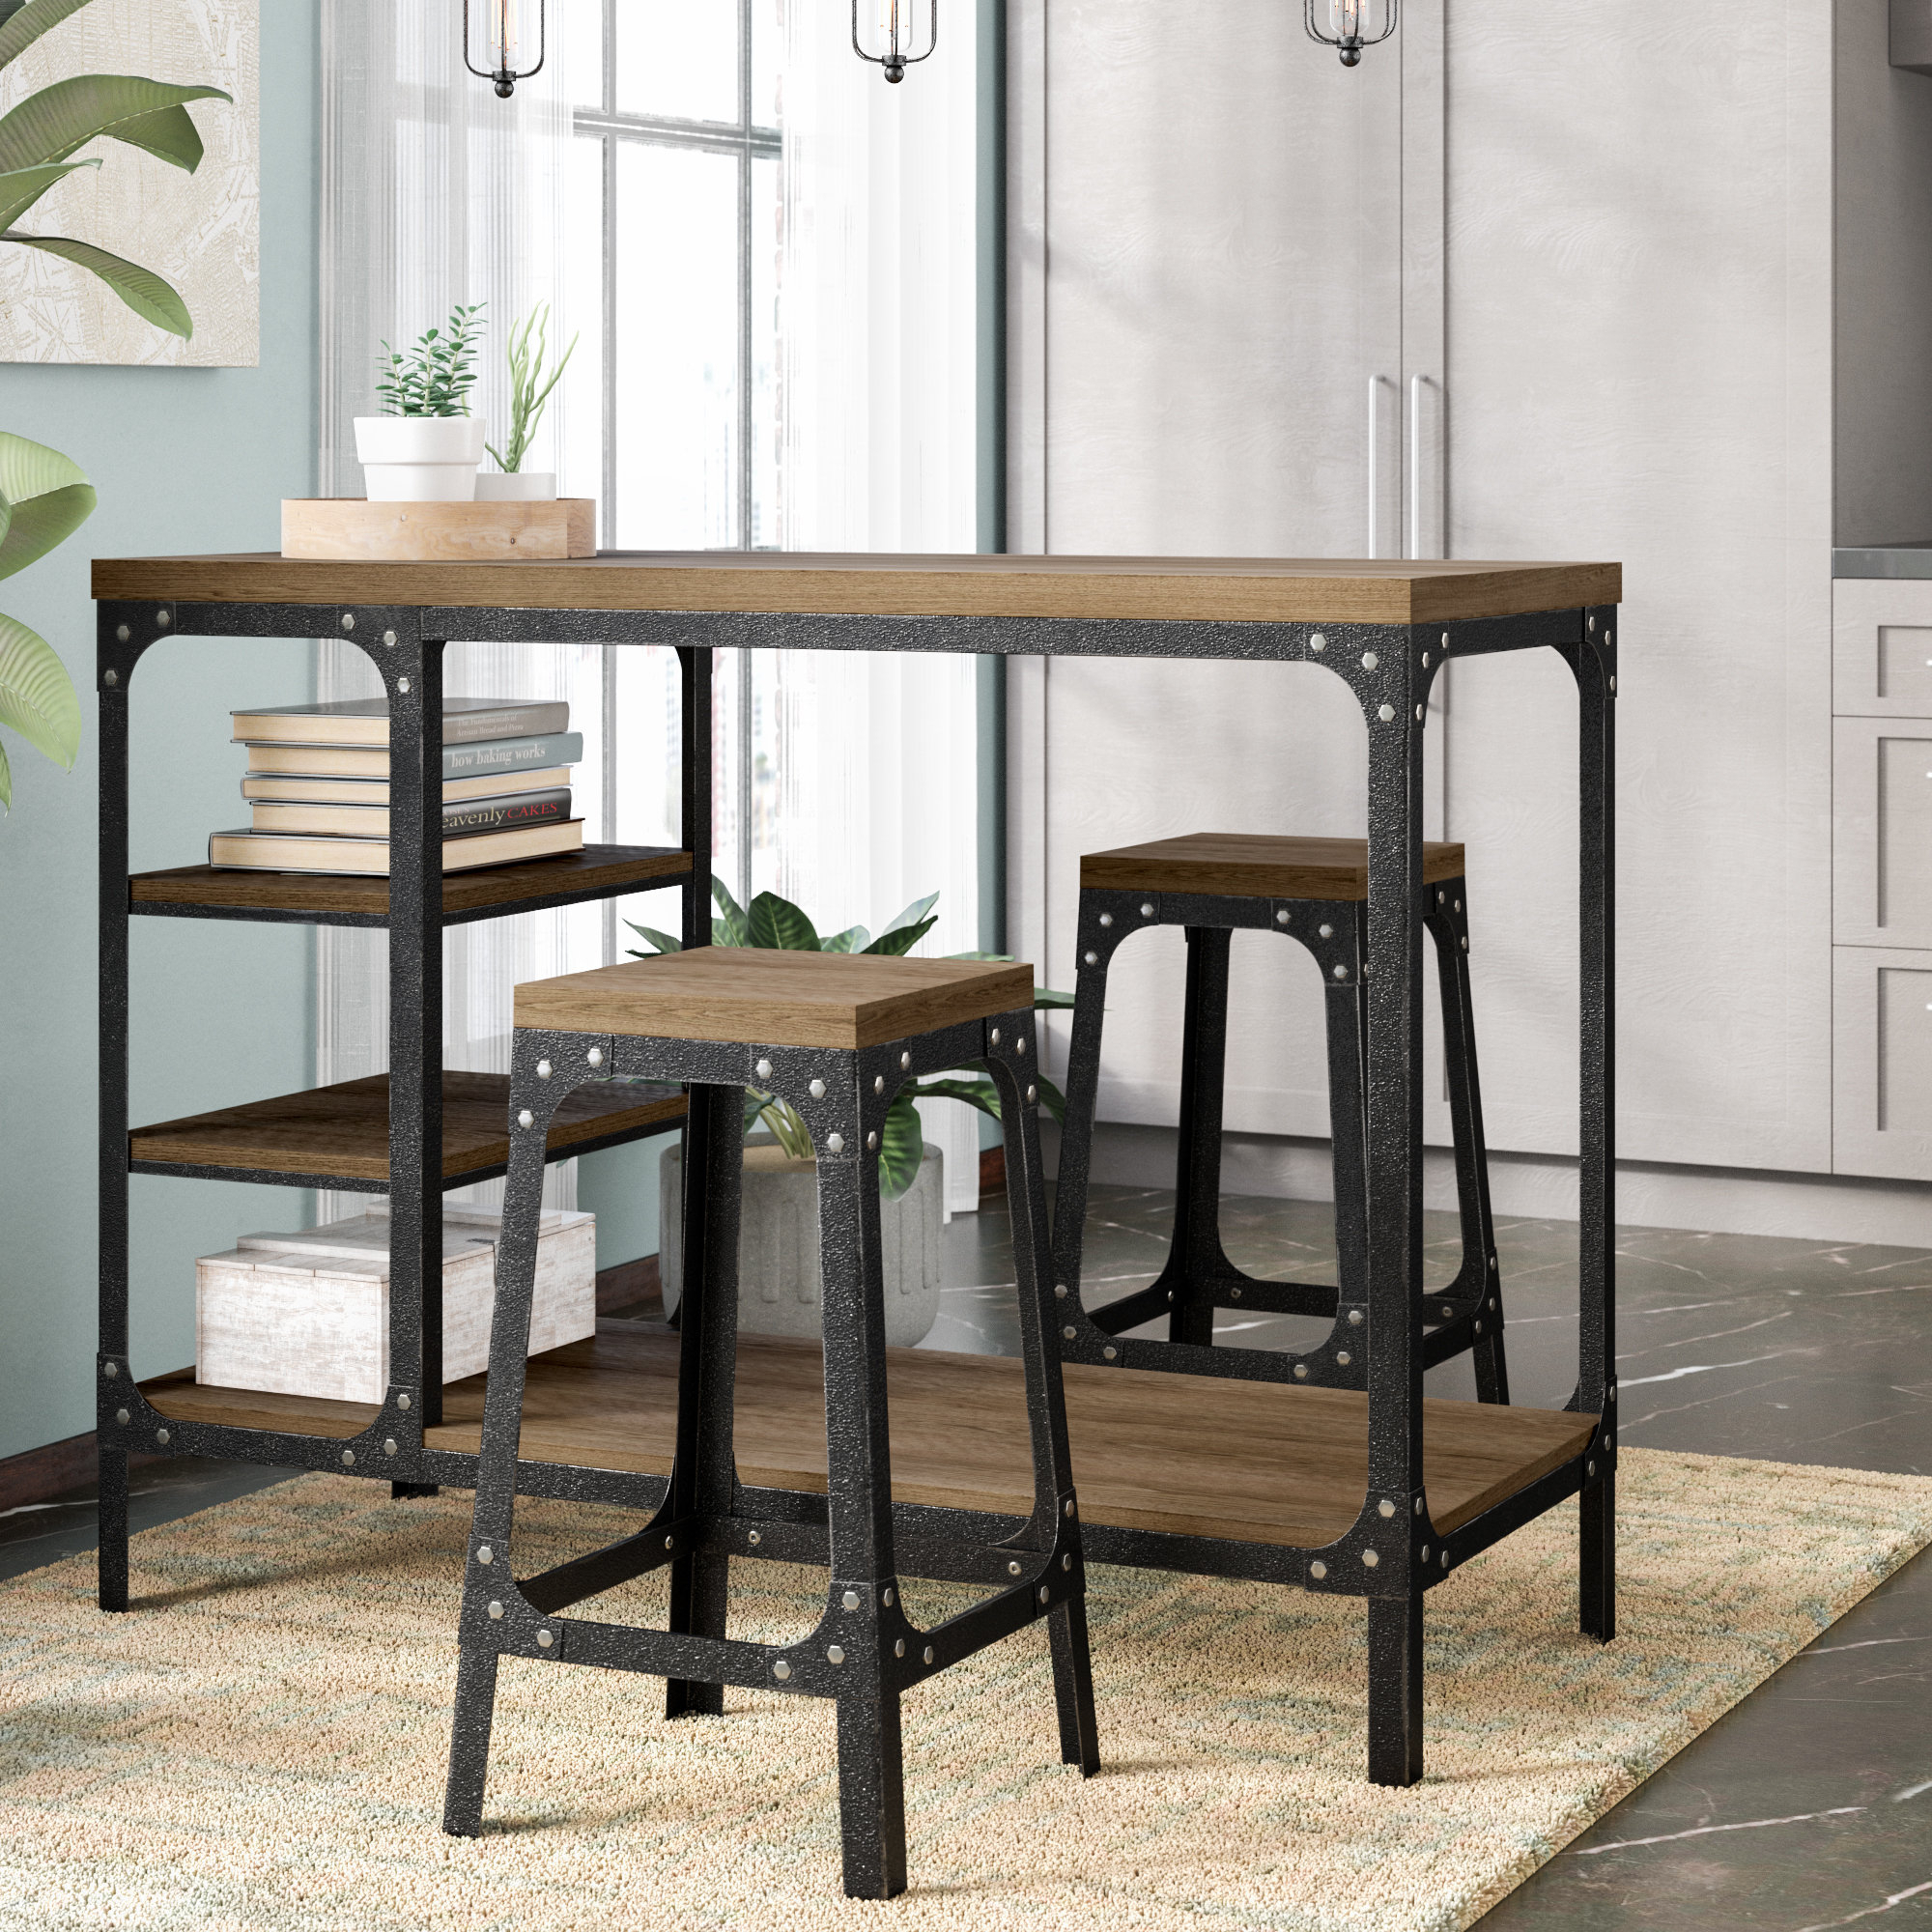 Williston Forge Terence 3 Piece Breakfast Nook Dining Set Throughout 2017 Giles 3 Piece Dining Sets (Image 19 of 20)